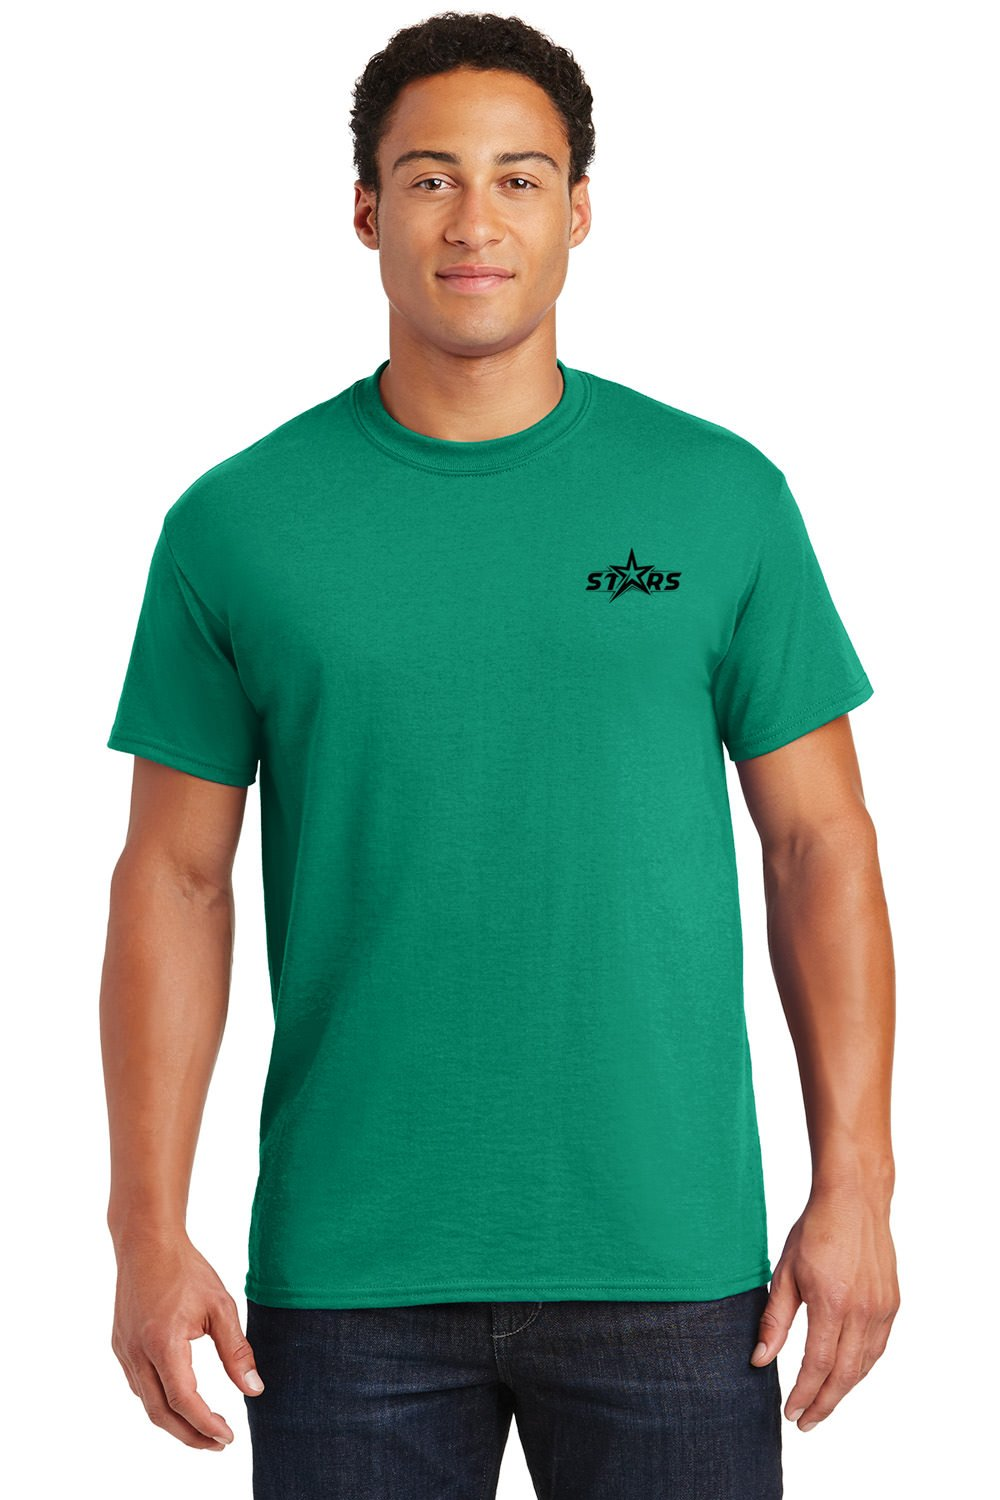 Gildan DryBlend Men's T-Shirt - 24 Qty - Promotional Product - Imprinted With Your Company Name, Logo or Message